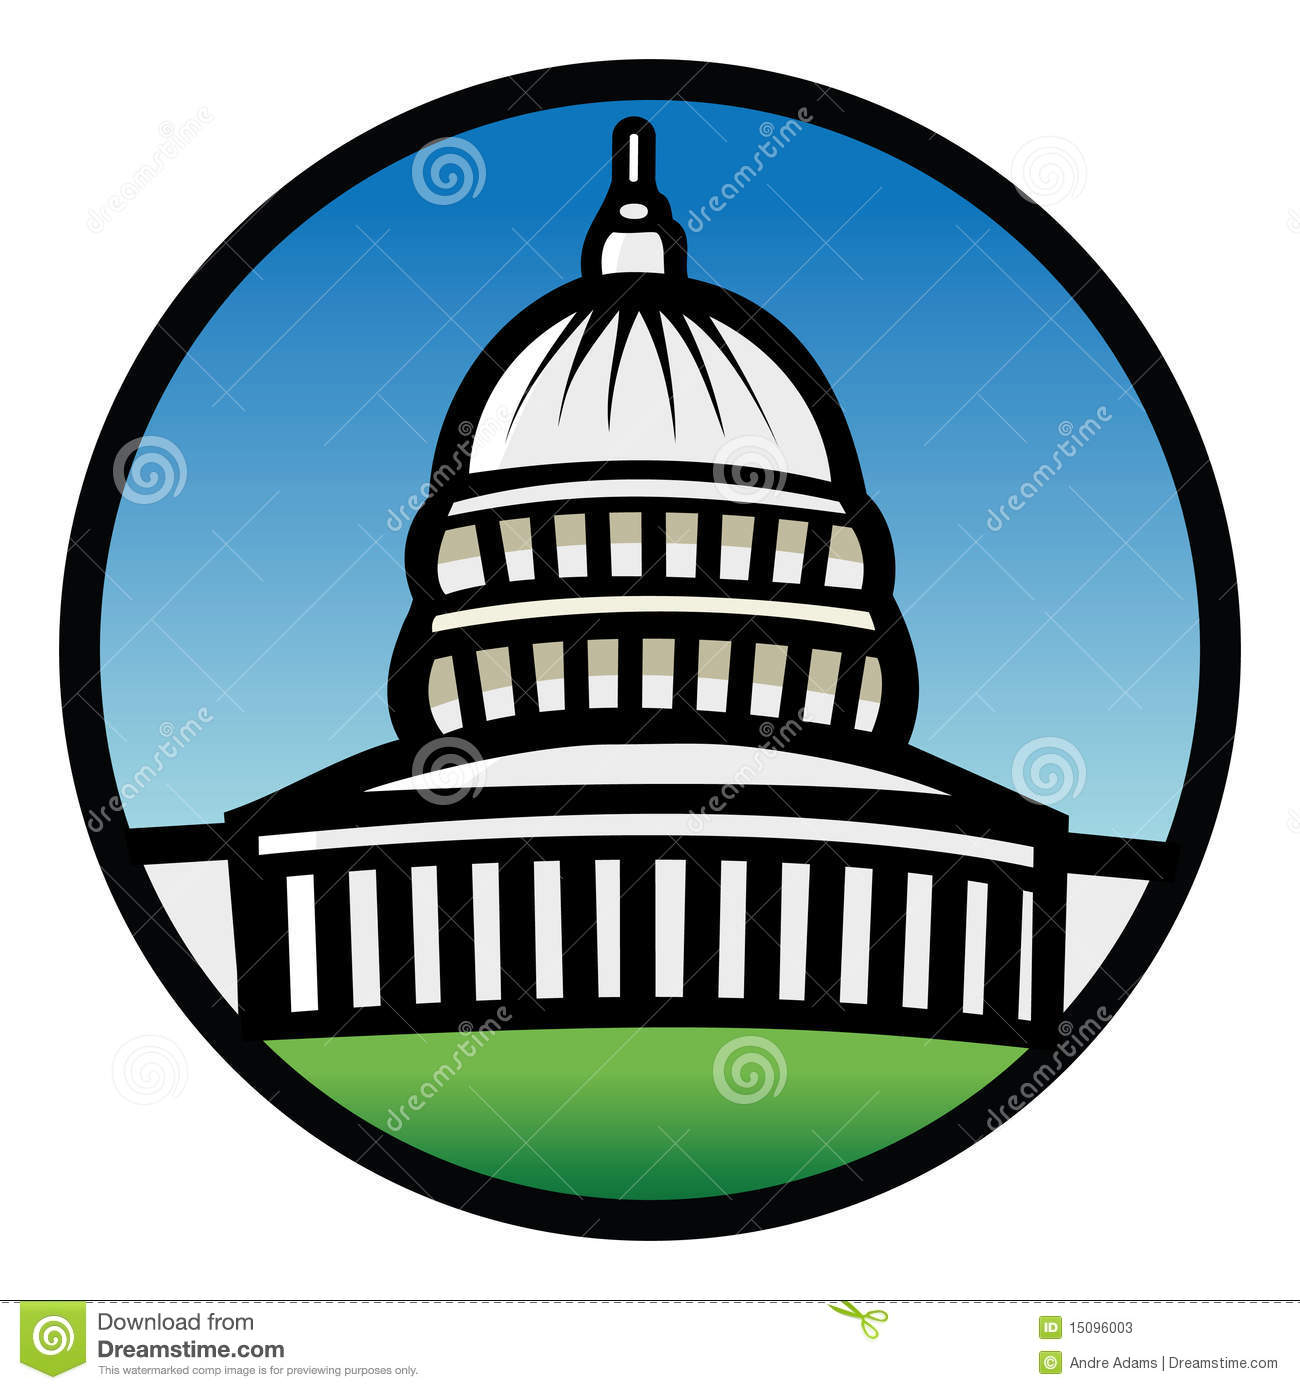 Displaying 19 Images For Congress Building Clip Art. House Of Representatives Clipart   Clipart Kid